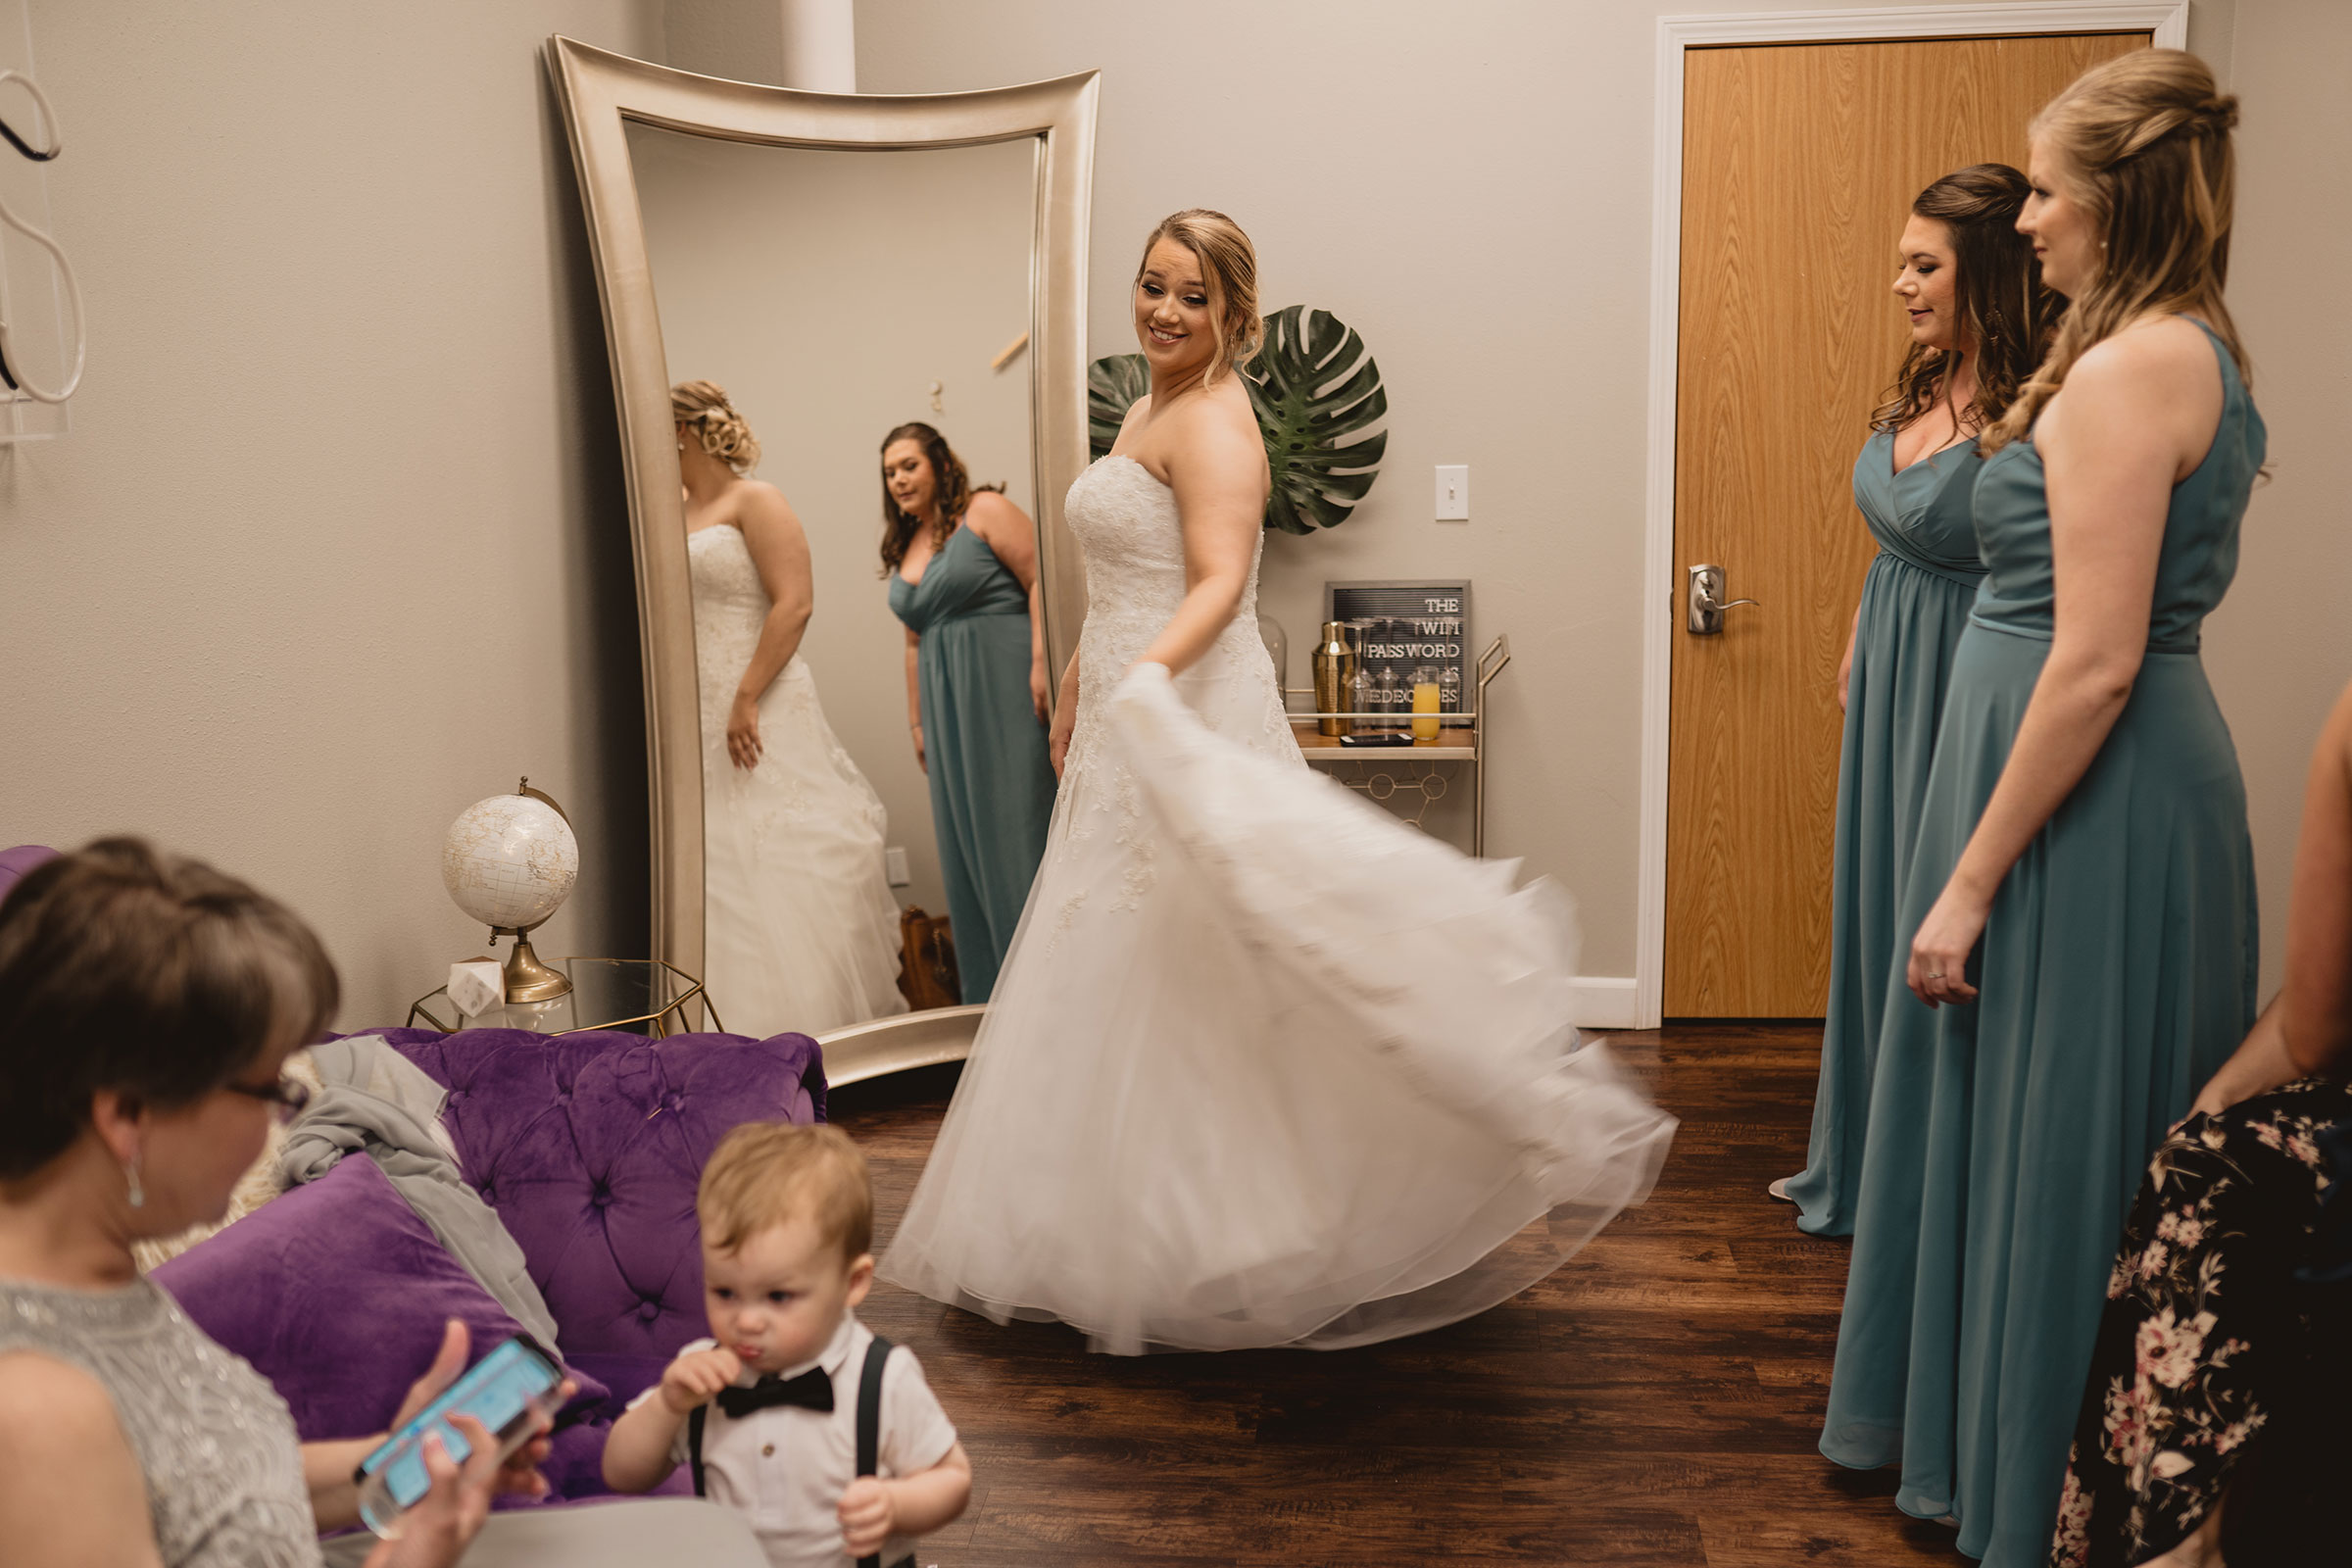 bride-swirling-her-dress-while-getting-ready-decades-event-center-building-desmoines-iowa-raelyn-ramey-photography..jpg